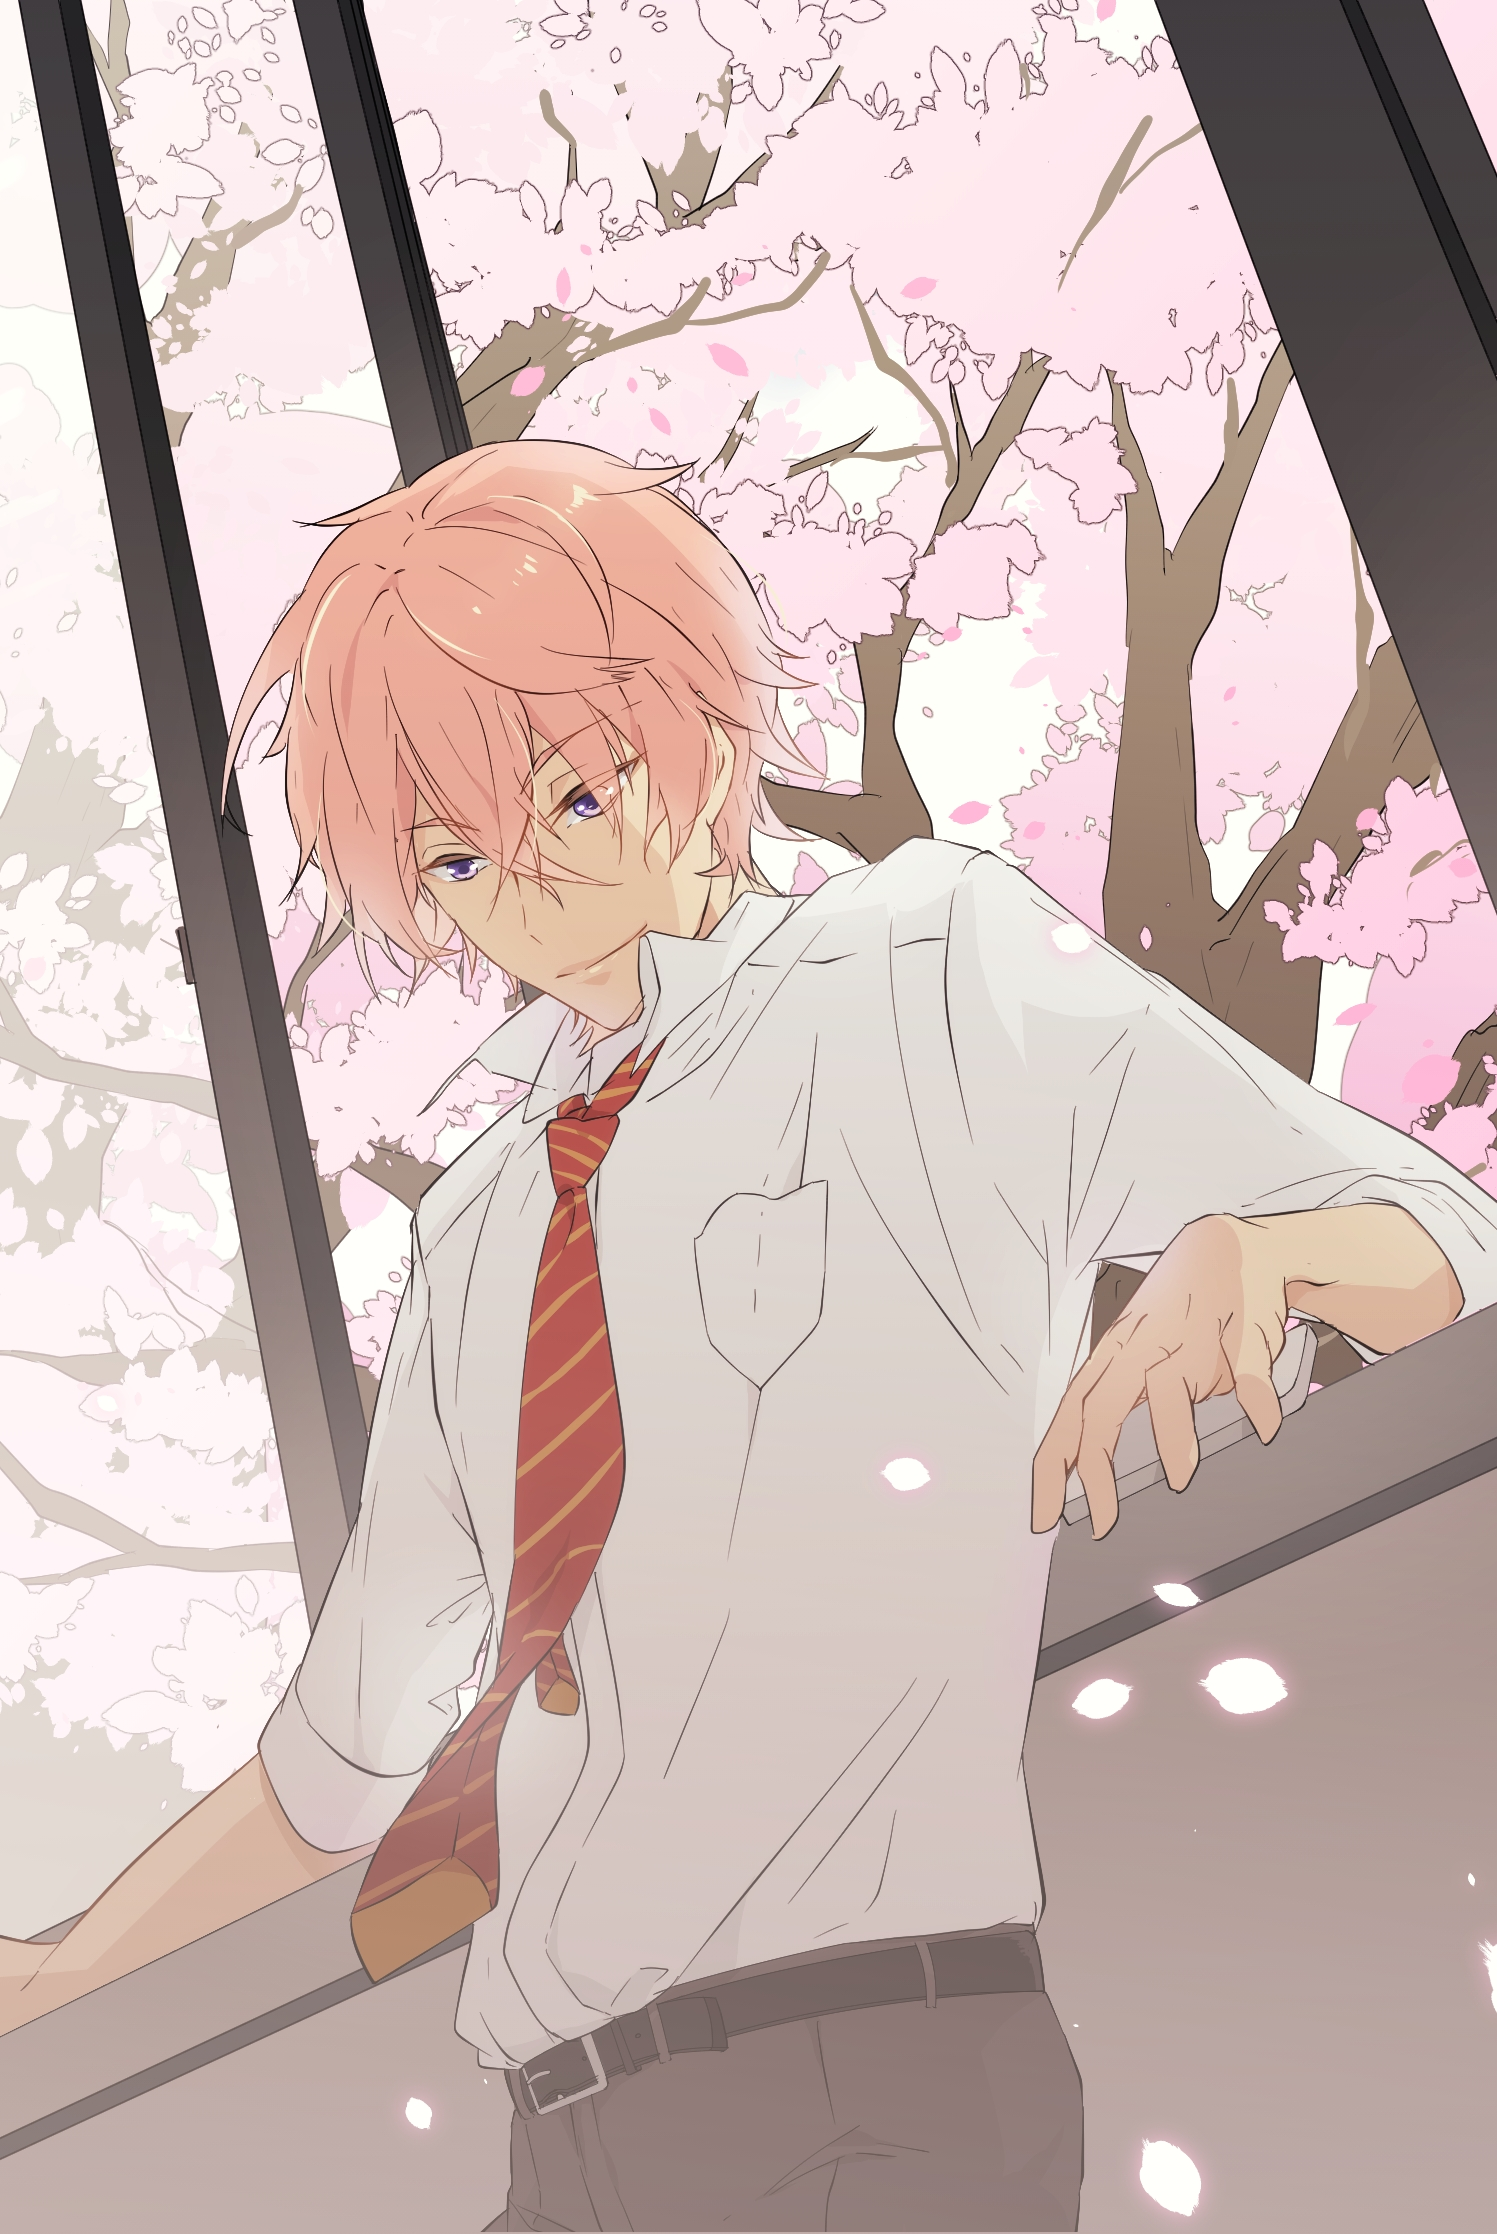 The Best Kisumi Free Iwatobi Images